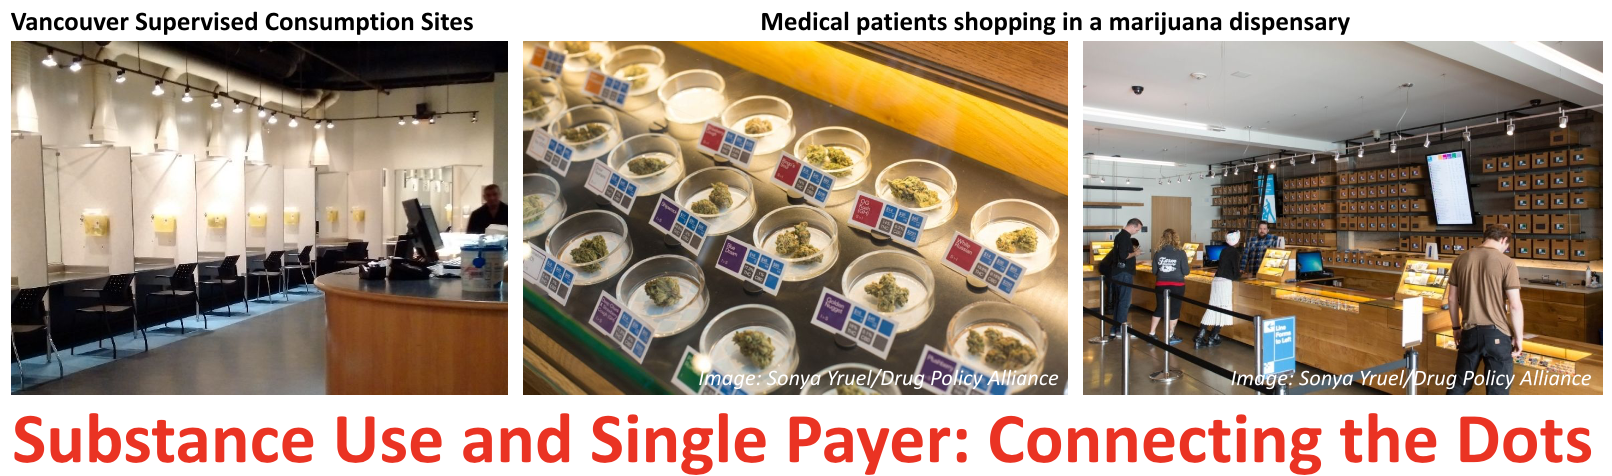 Trio of images with the text: Substance Use and Single Payer - Connecting the Dots. The first image shows supervised injection sites in Vancouver, the second two images are different views of a marijuana dispensary.